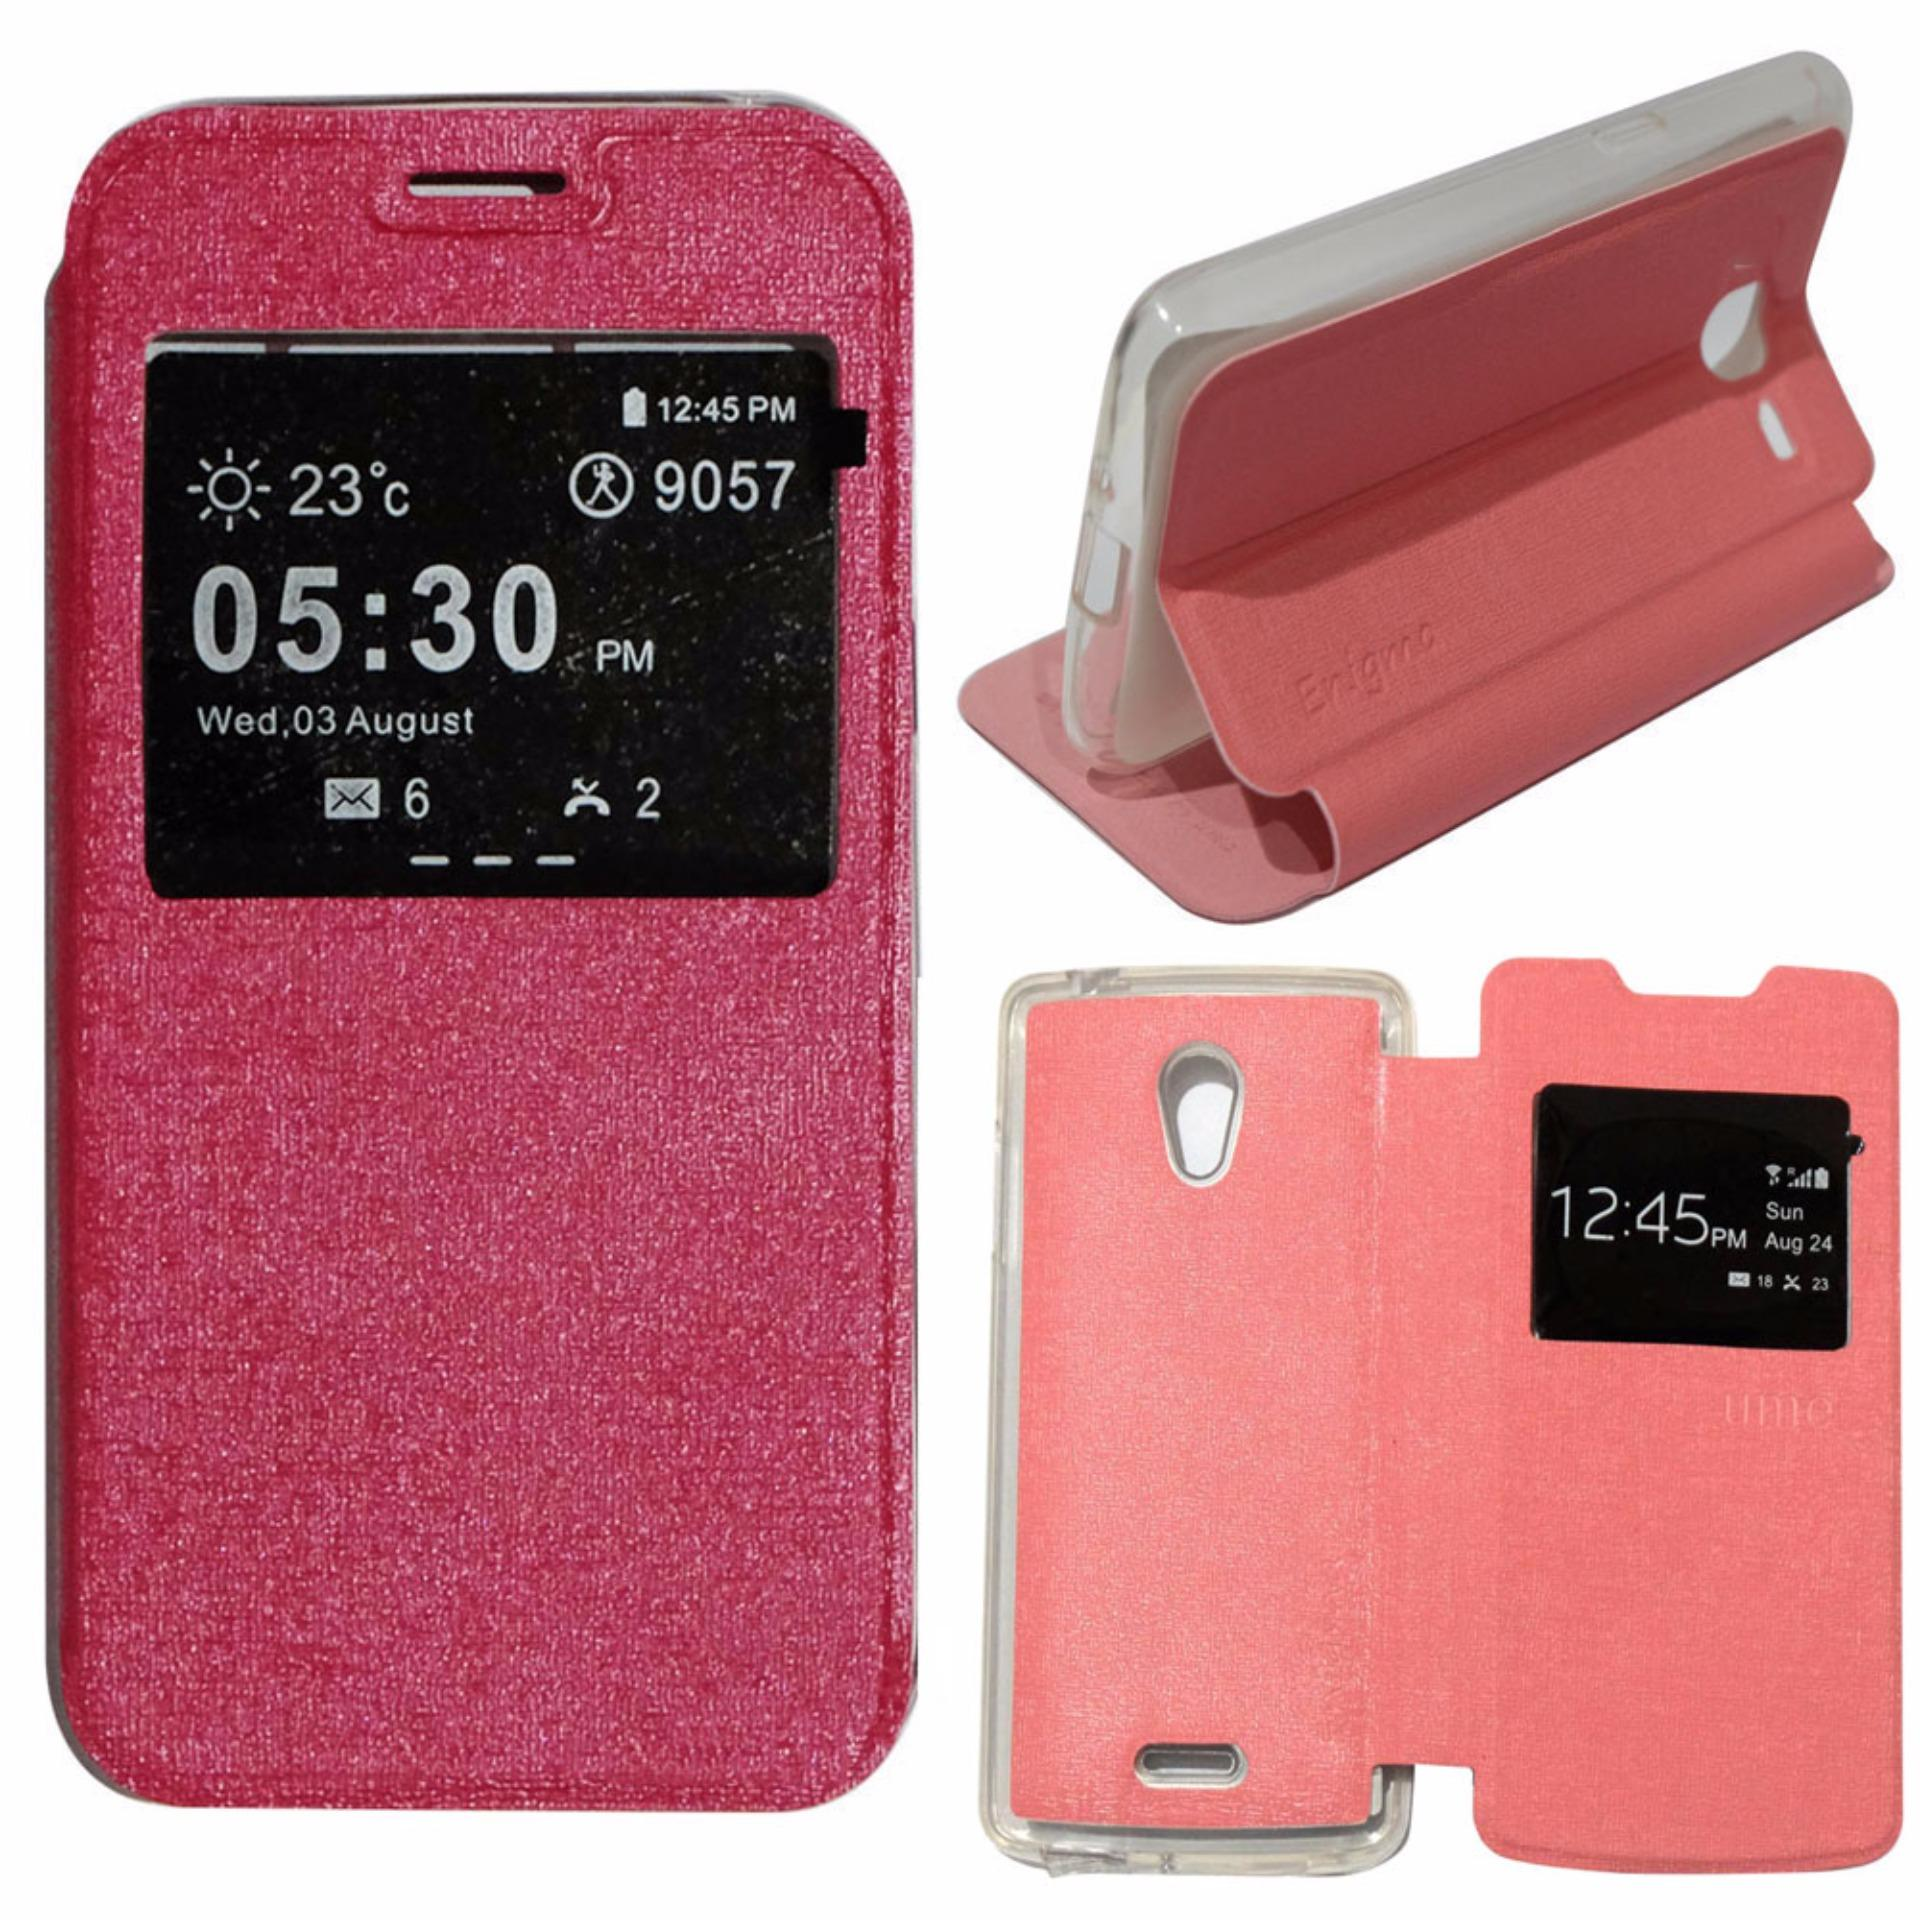 Pencari Harga Ume Leather Cover Oppo Joy R1001 Leather Case Sarung / Flipshell / Flip Cover